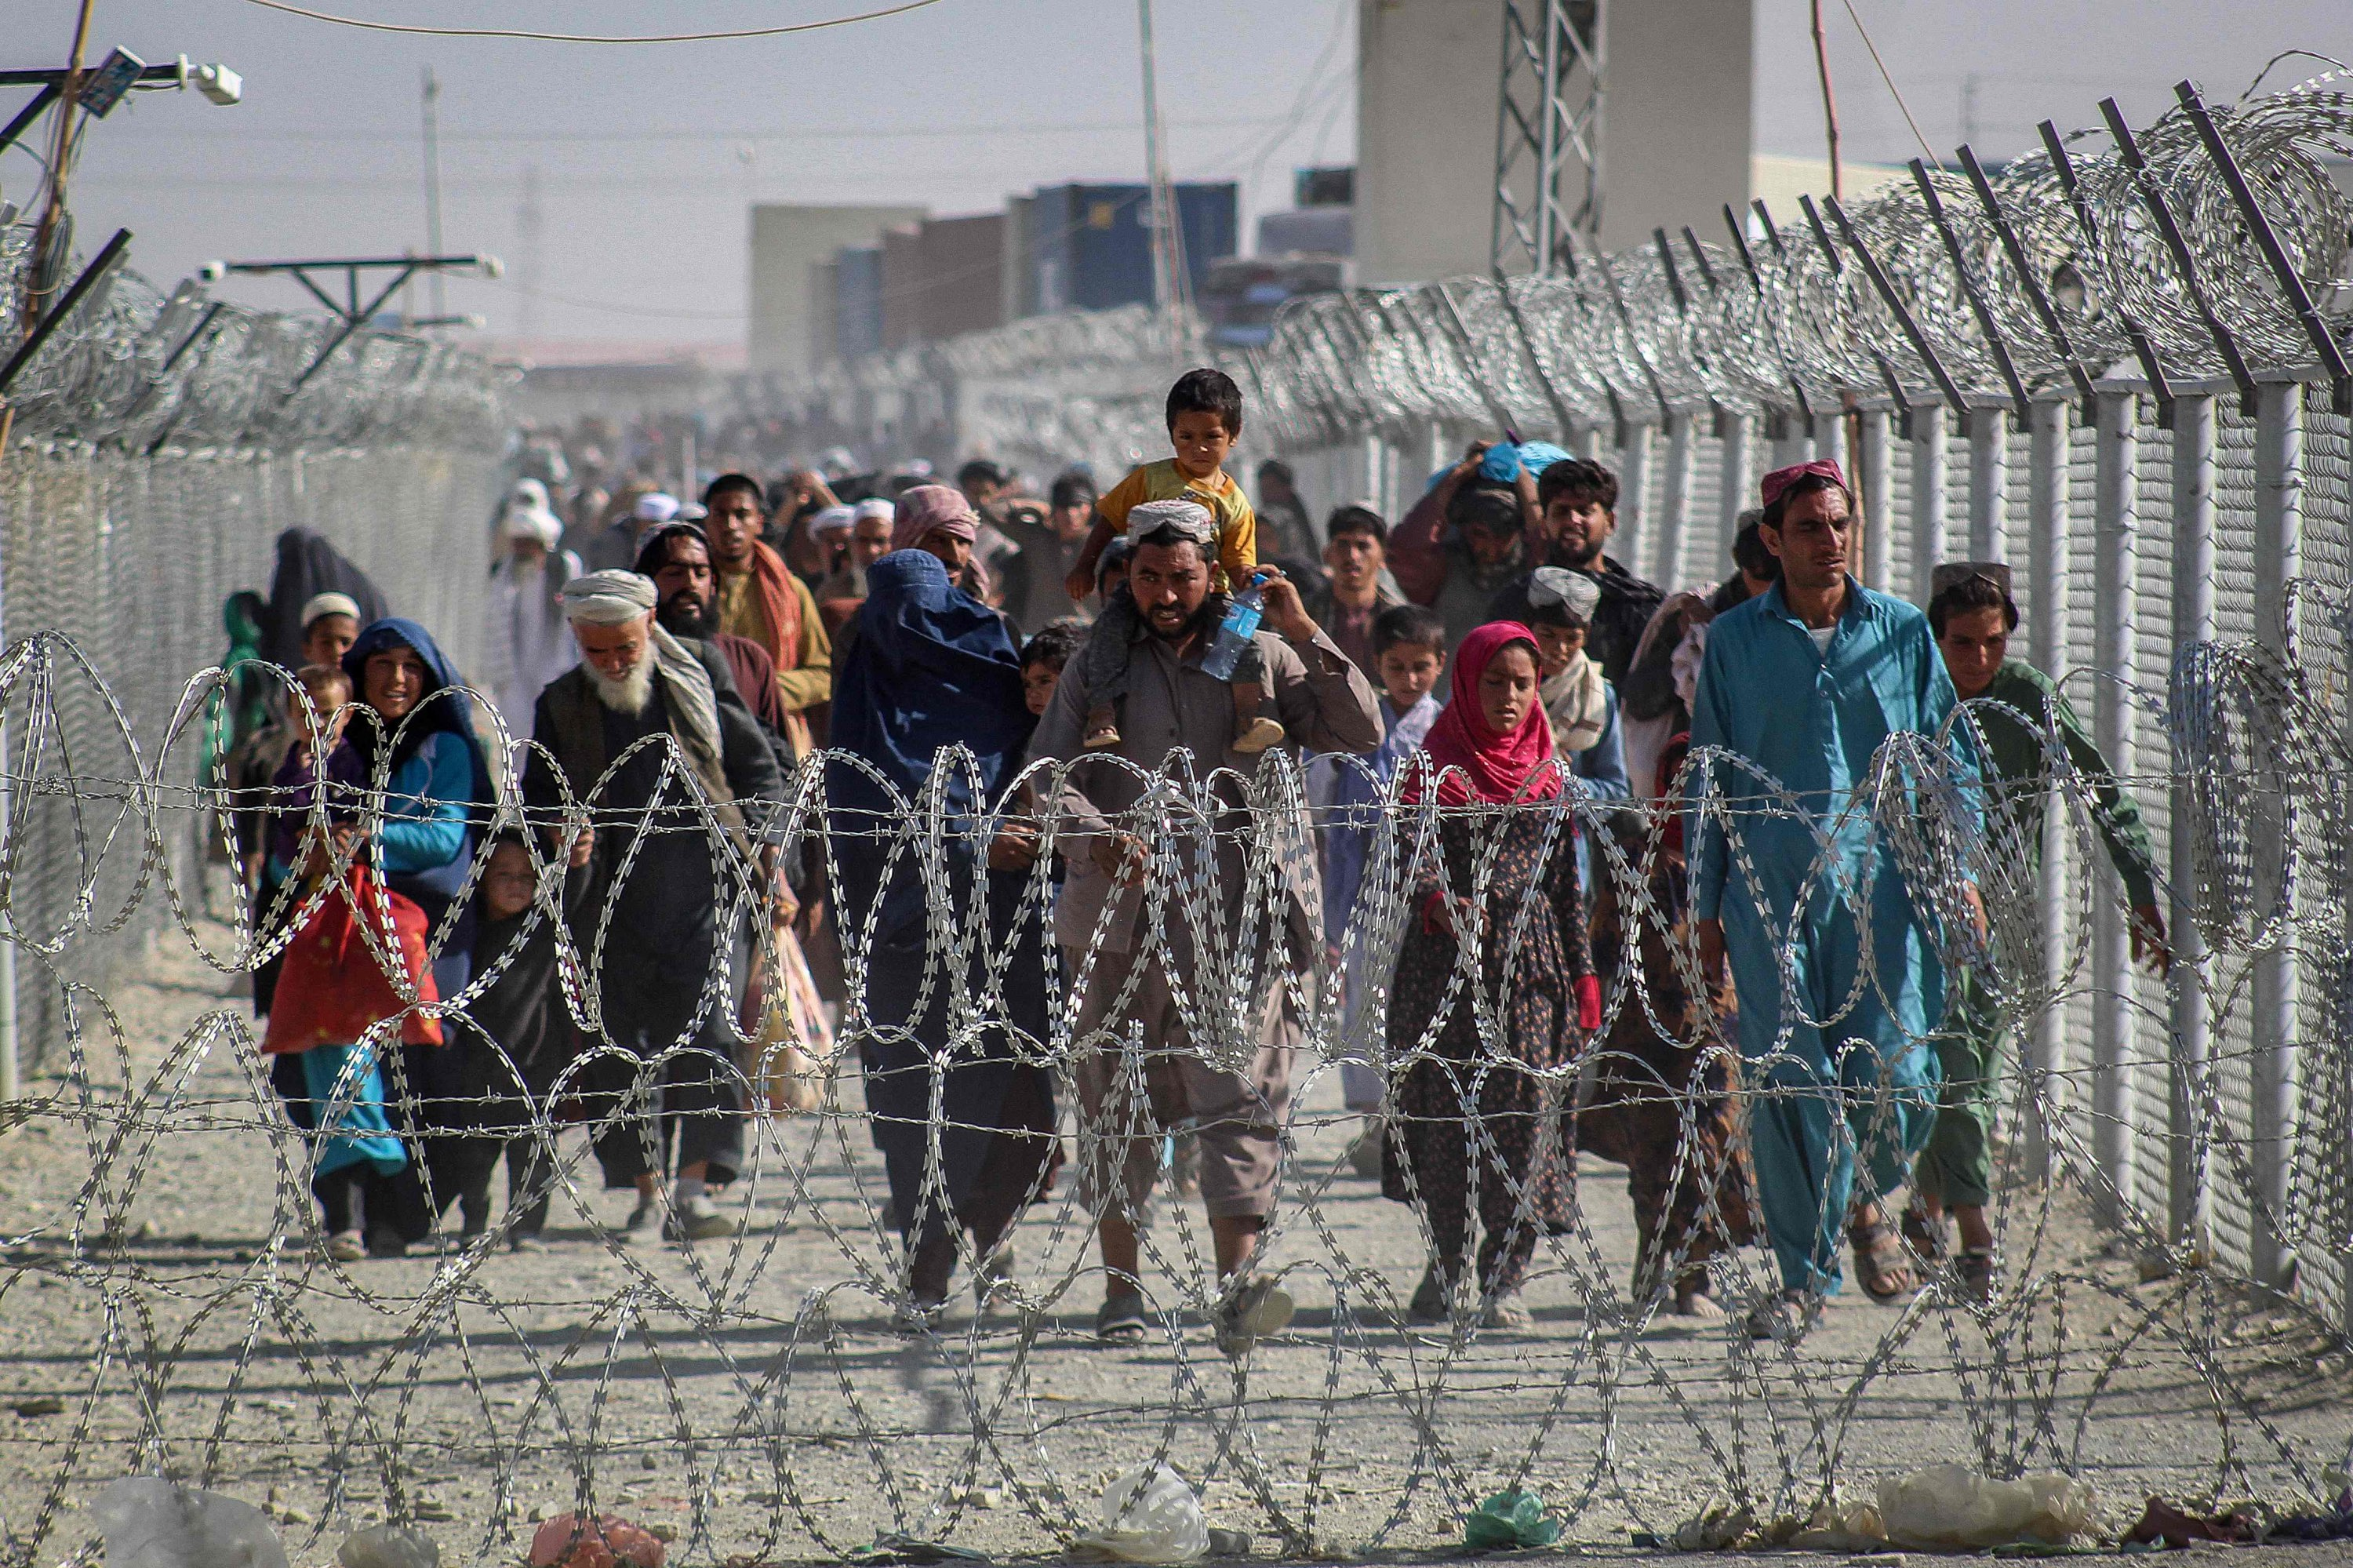 Afghans walk along fences as they arrive in Pakistan through the Pakistan-Afghanistan border crossing point following the Taliban's military takeover of Afghanistan, Chaman, Pakistan, Aug. 24, 2021. (AFP Photo)